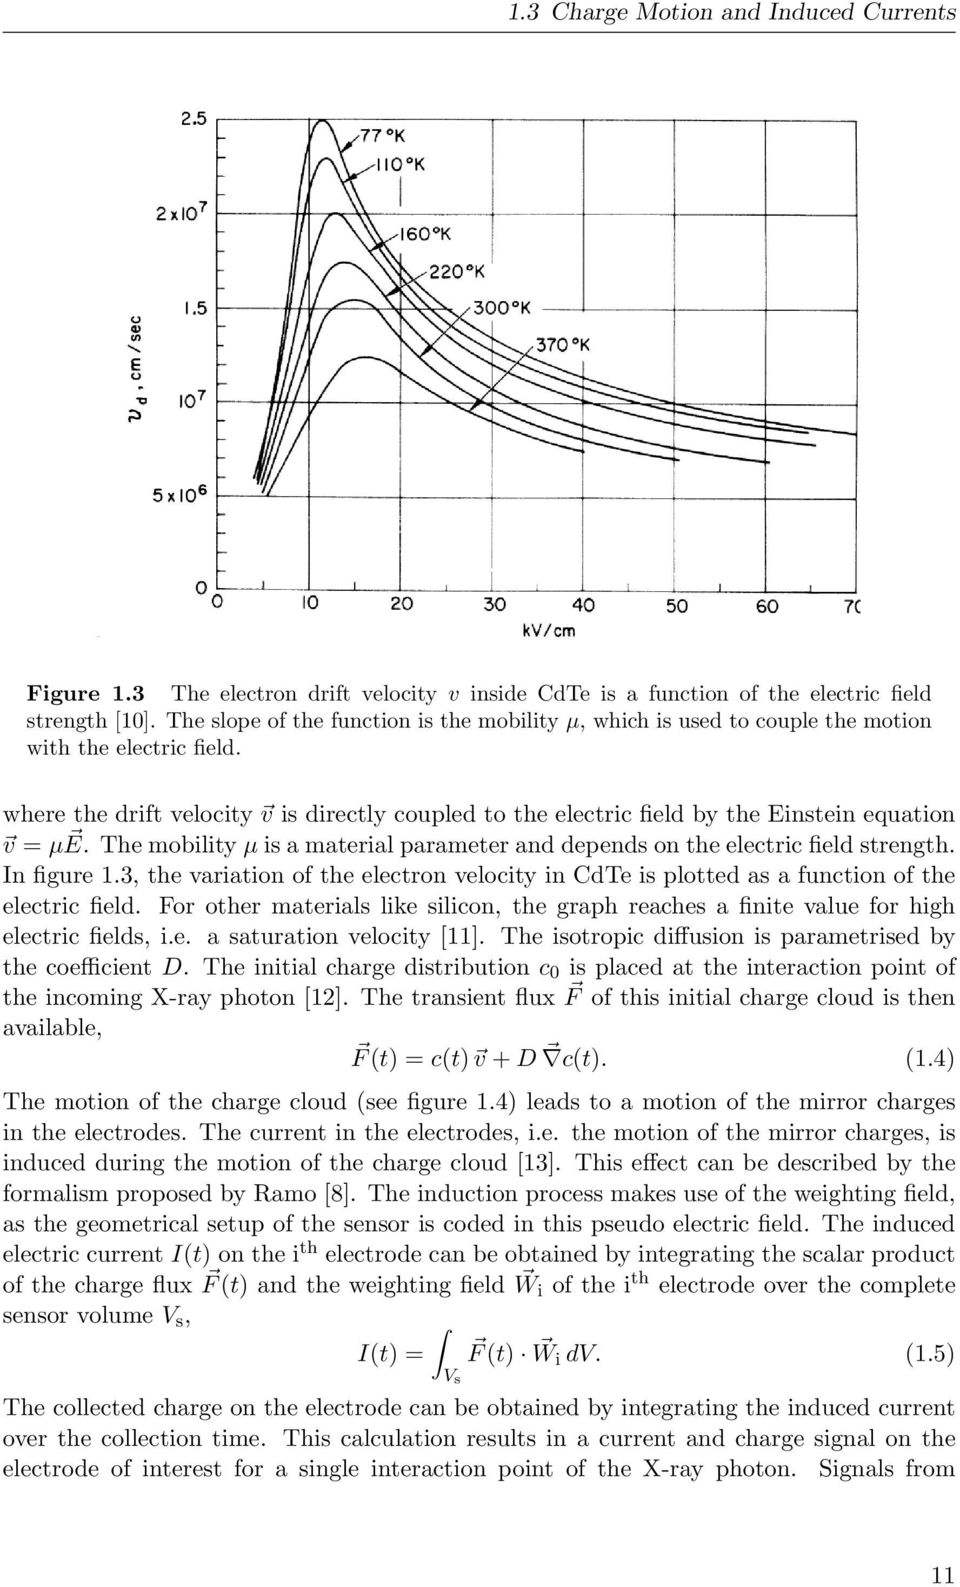 where the drift velocity v is directly coupled to the electric field by the Einstein equation v = µ E. The mobility µ is a material parameter and depends on the electric field strength. In figure 1.